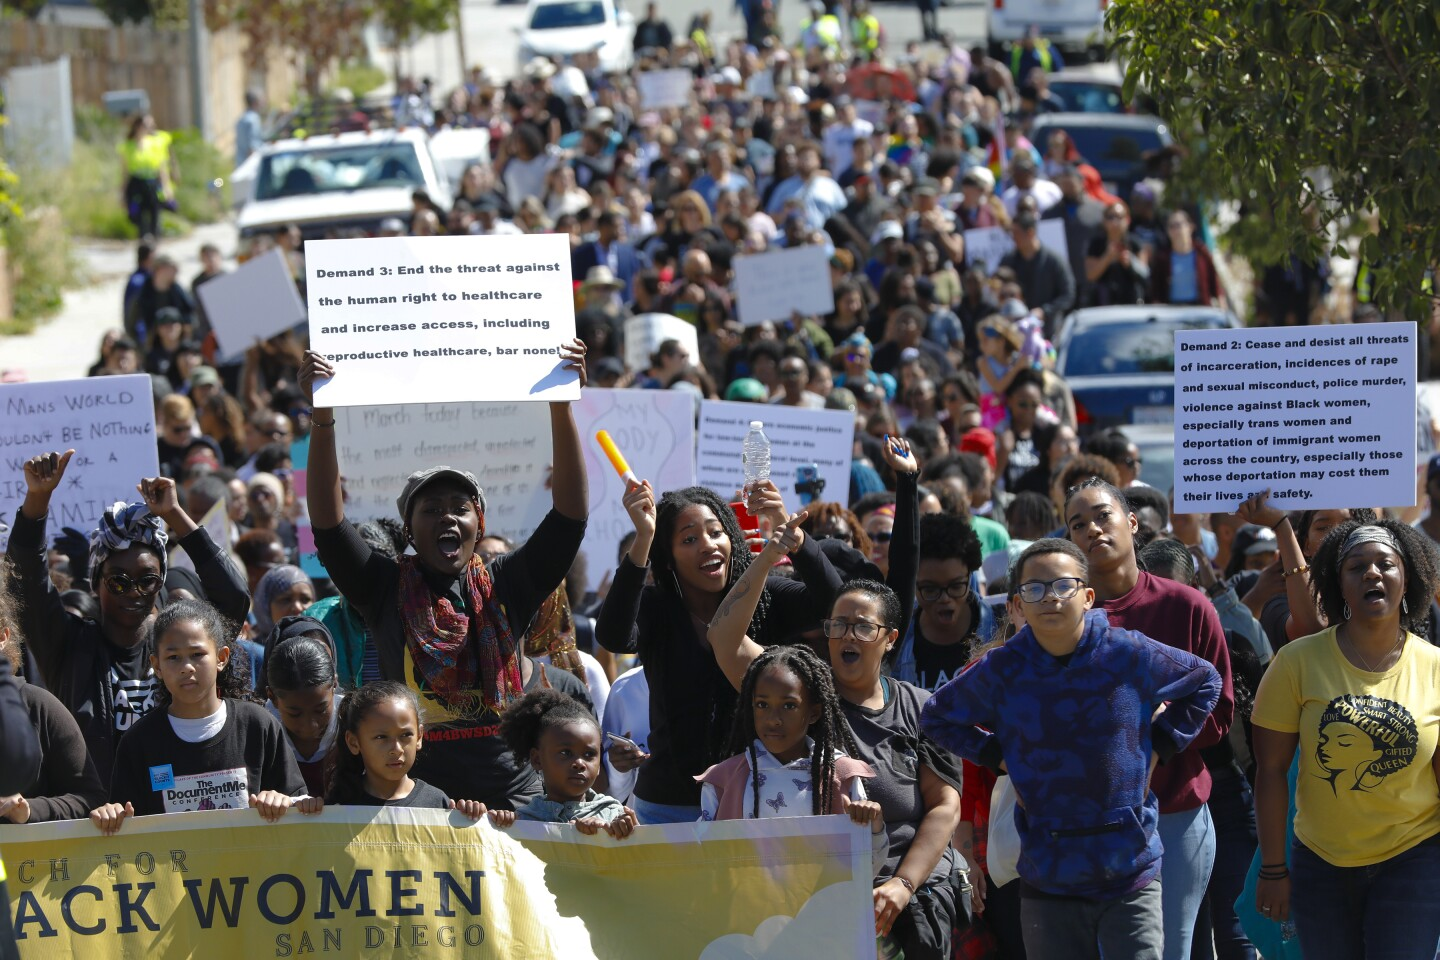 Immediately following a large rally held on the corner of Euclid and Logan Avenue on Sunday March 8, 2020, the group started their March for Black Women San Diego heading north on Euclid Avenue. The march ended at Kennedy Neighborhood Park where they listened to additional speakers and performers.